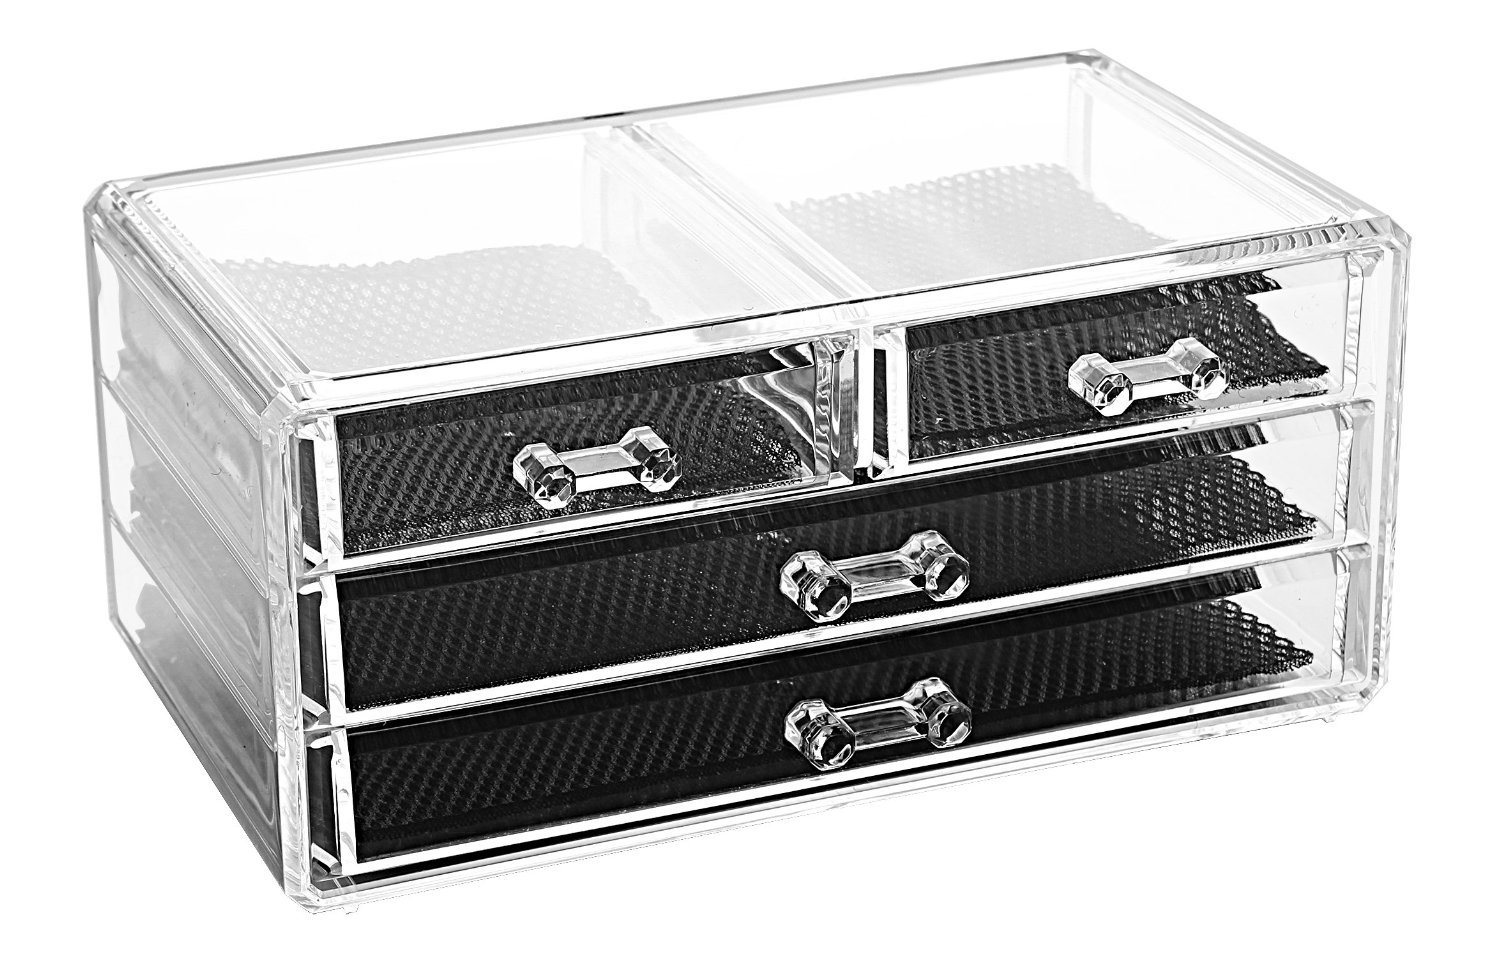 Amazoncom Acrylic Makeup Organizer Cosmetic Organizers Jewelry and